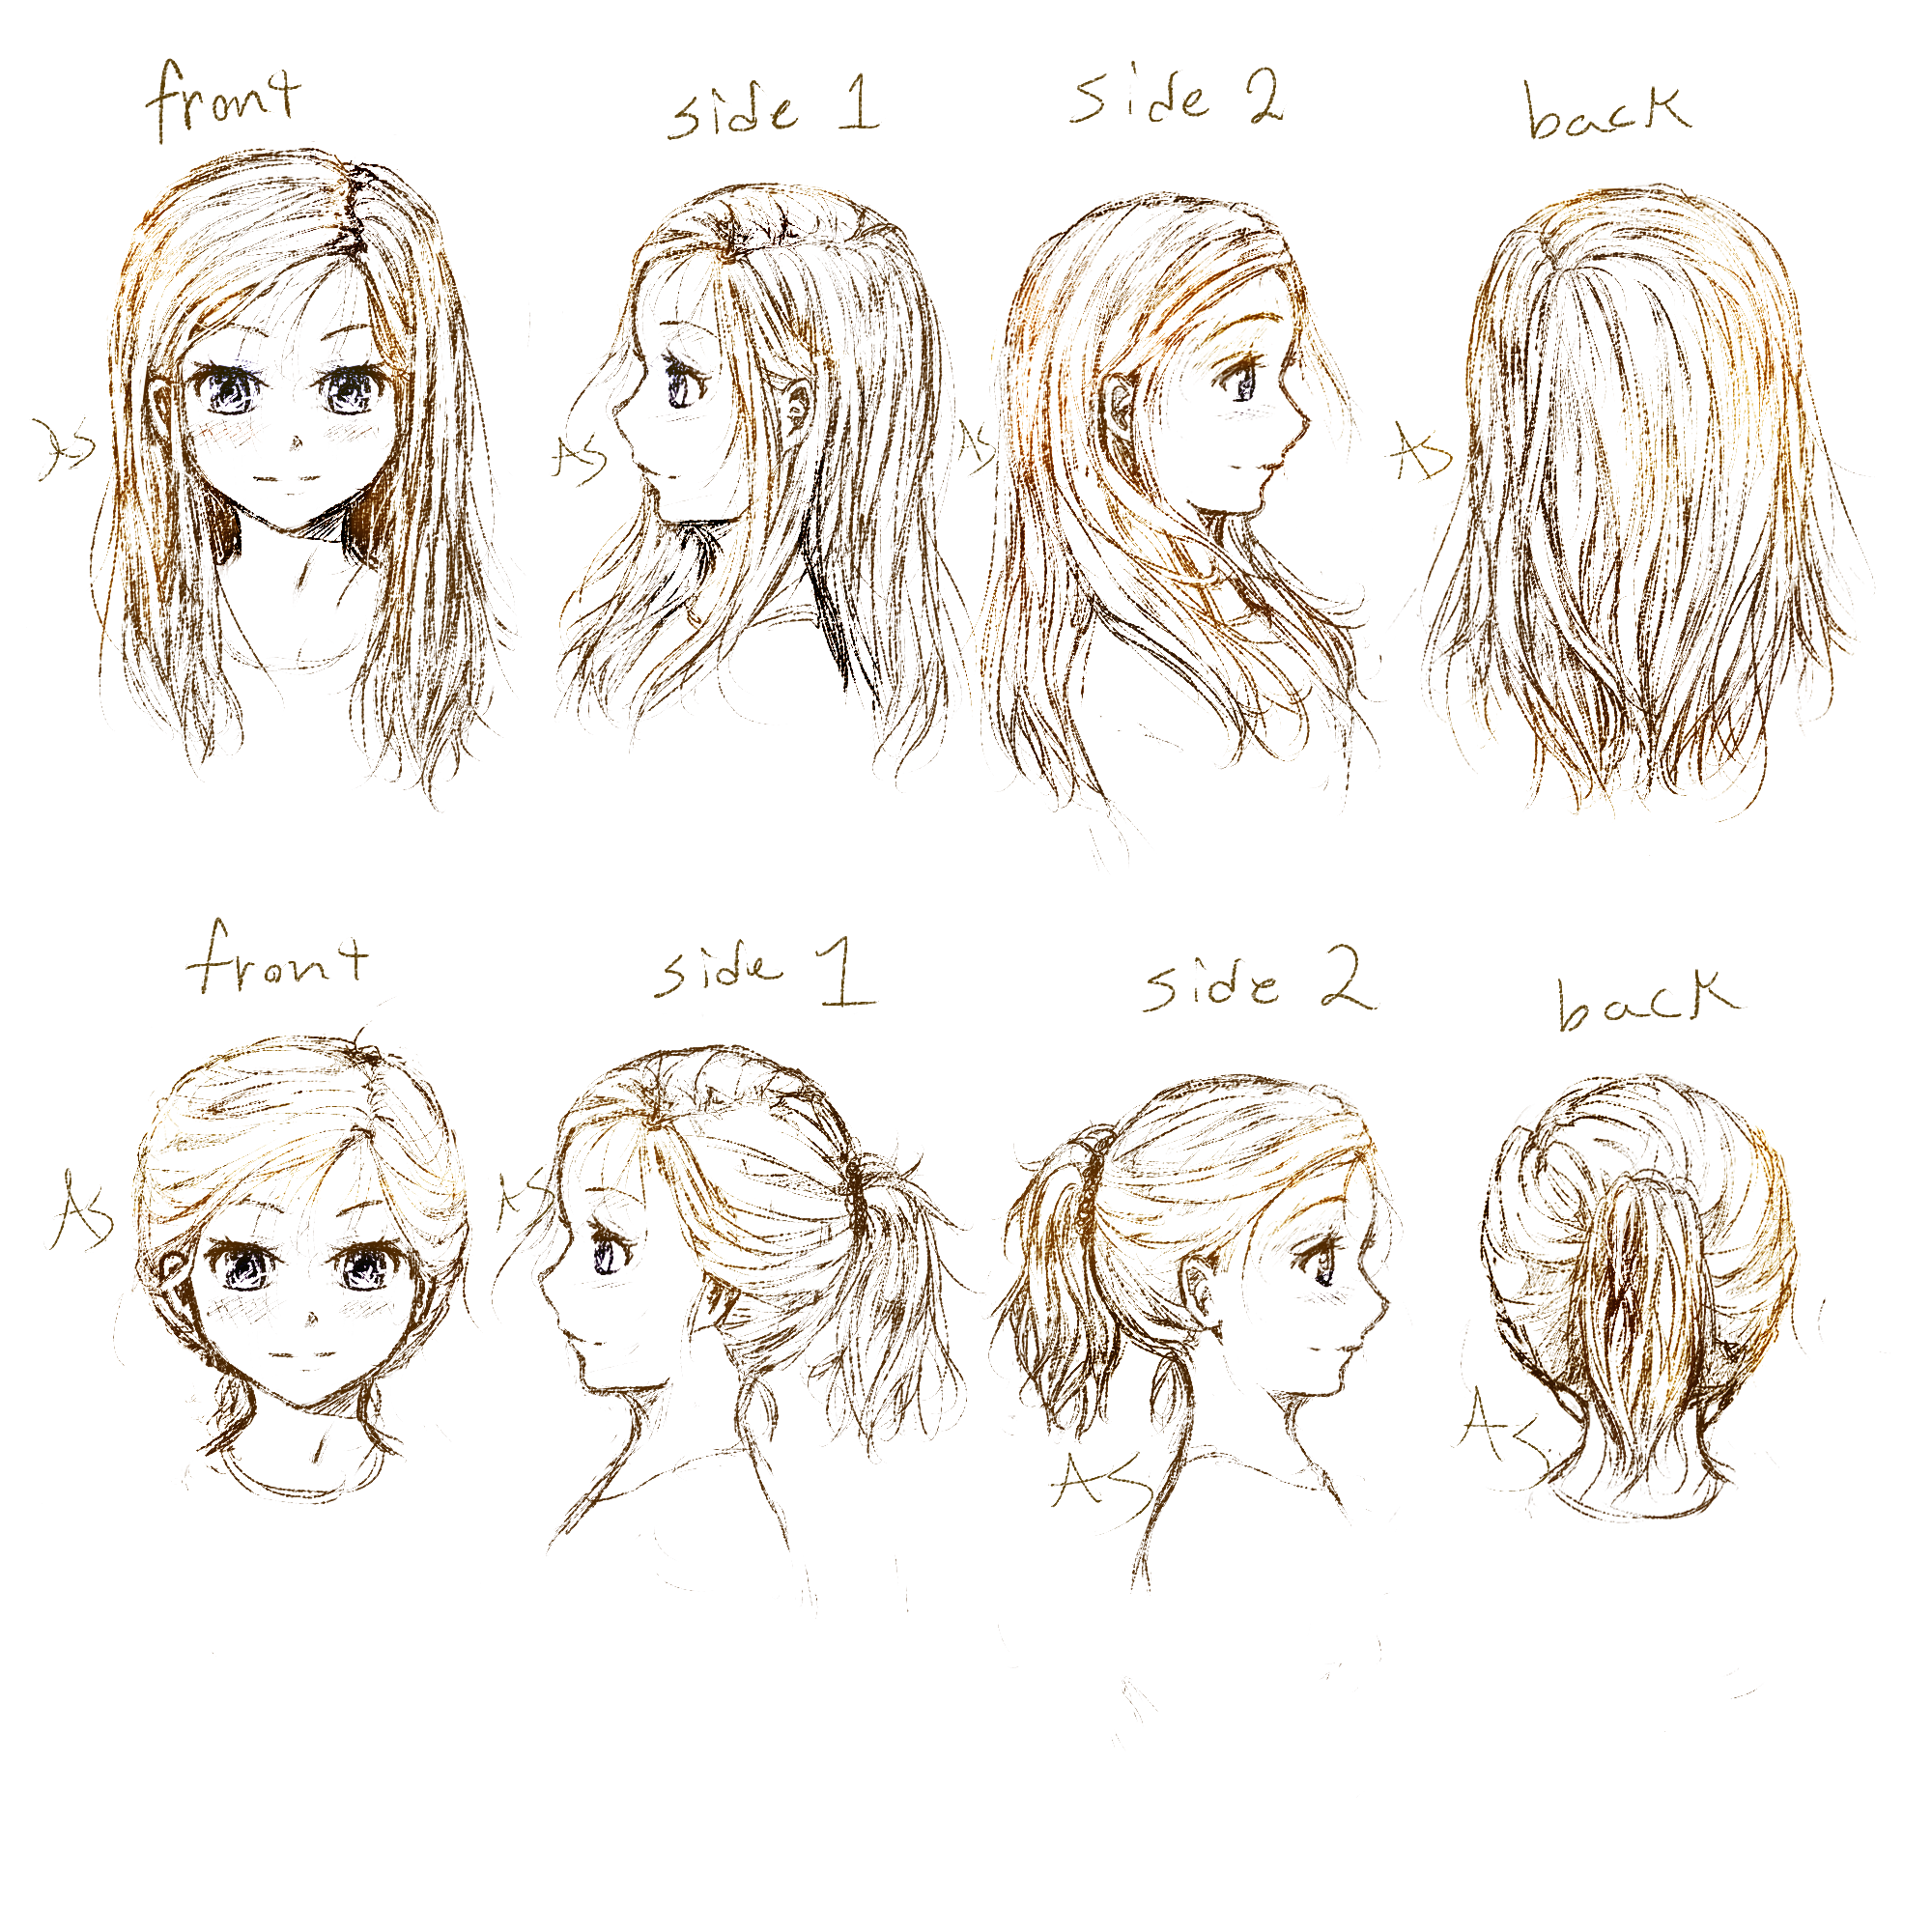 hairstyles for hair challenged Hair challenge 2013 Manga